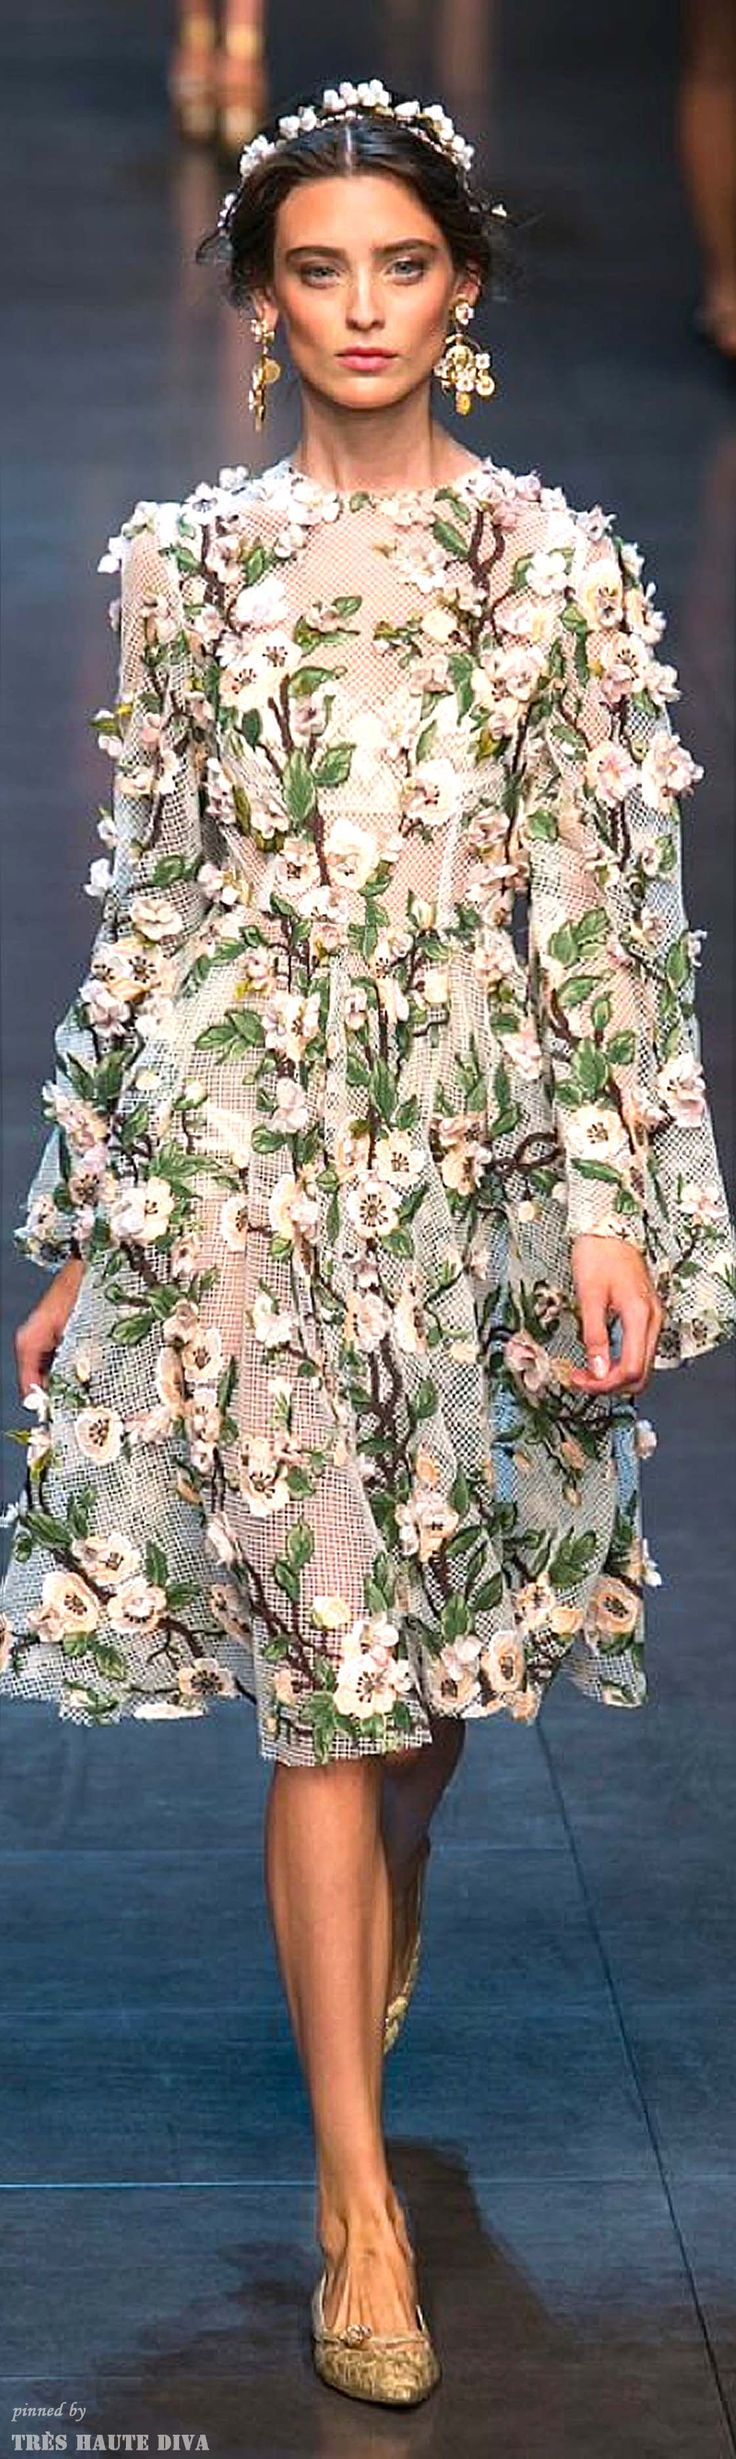 Floral. -- Dolce & Gabbana Spring 2014 RTW